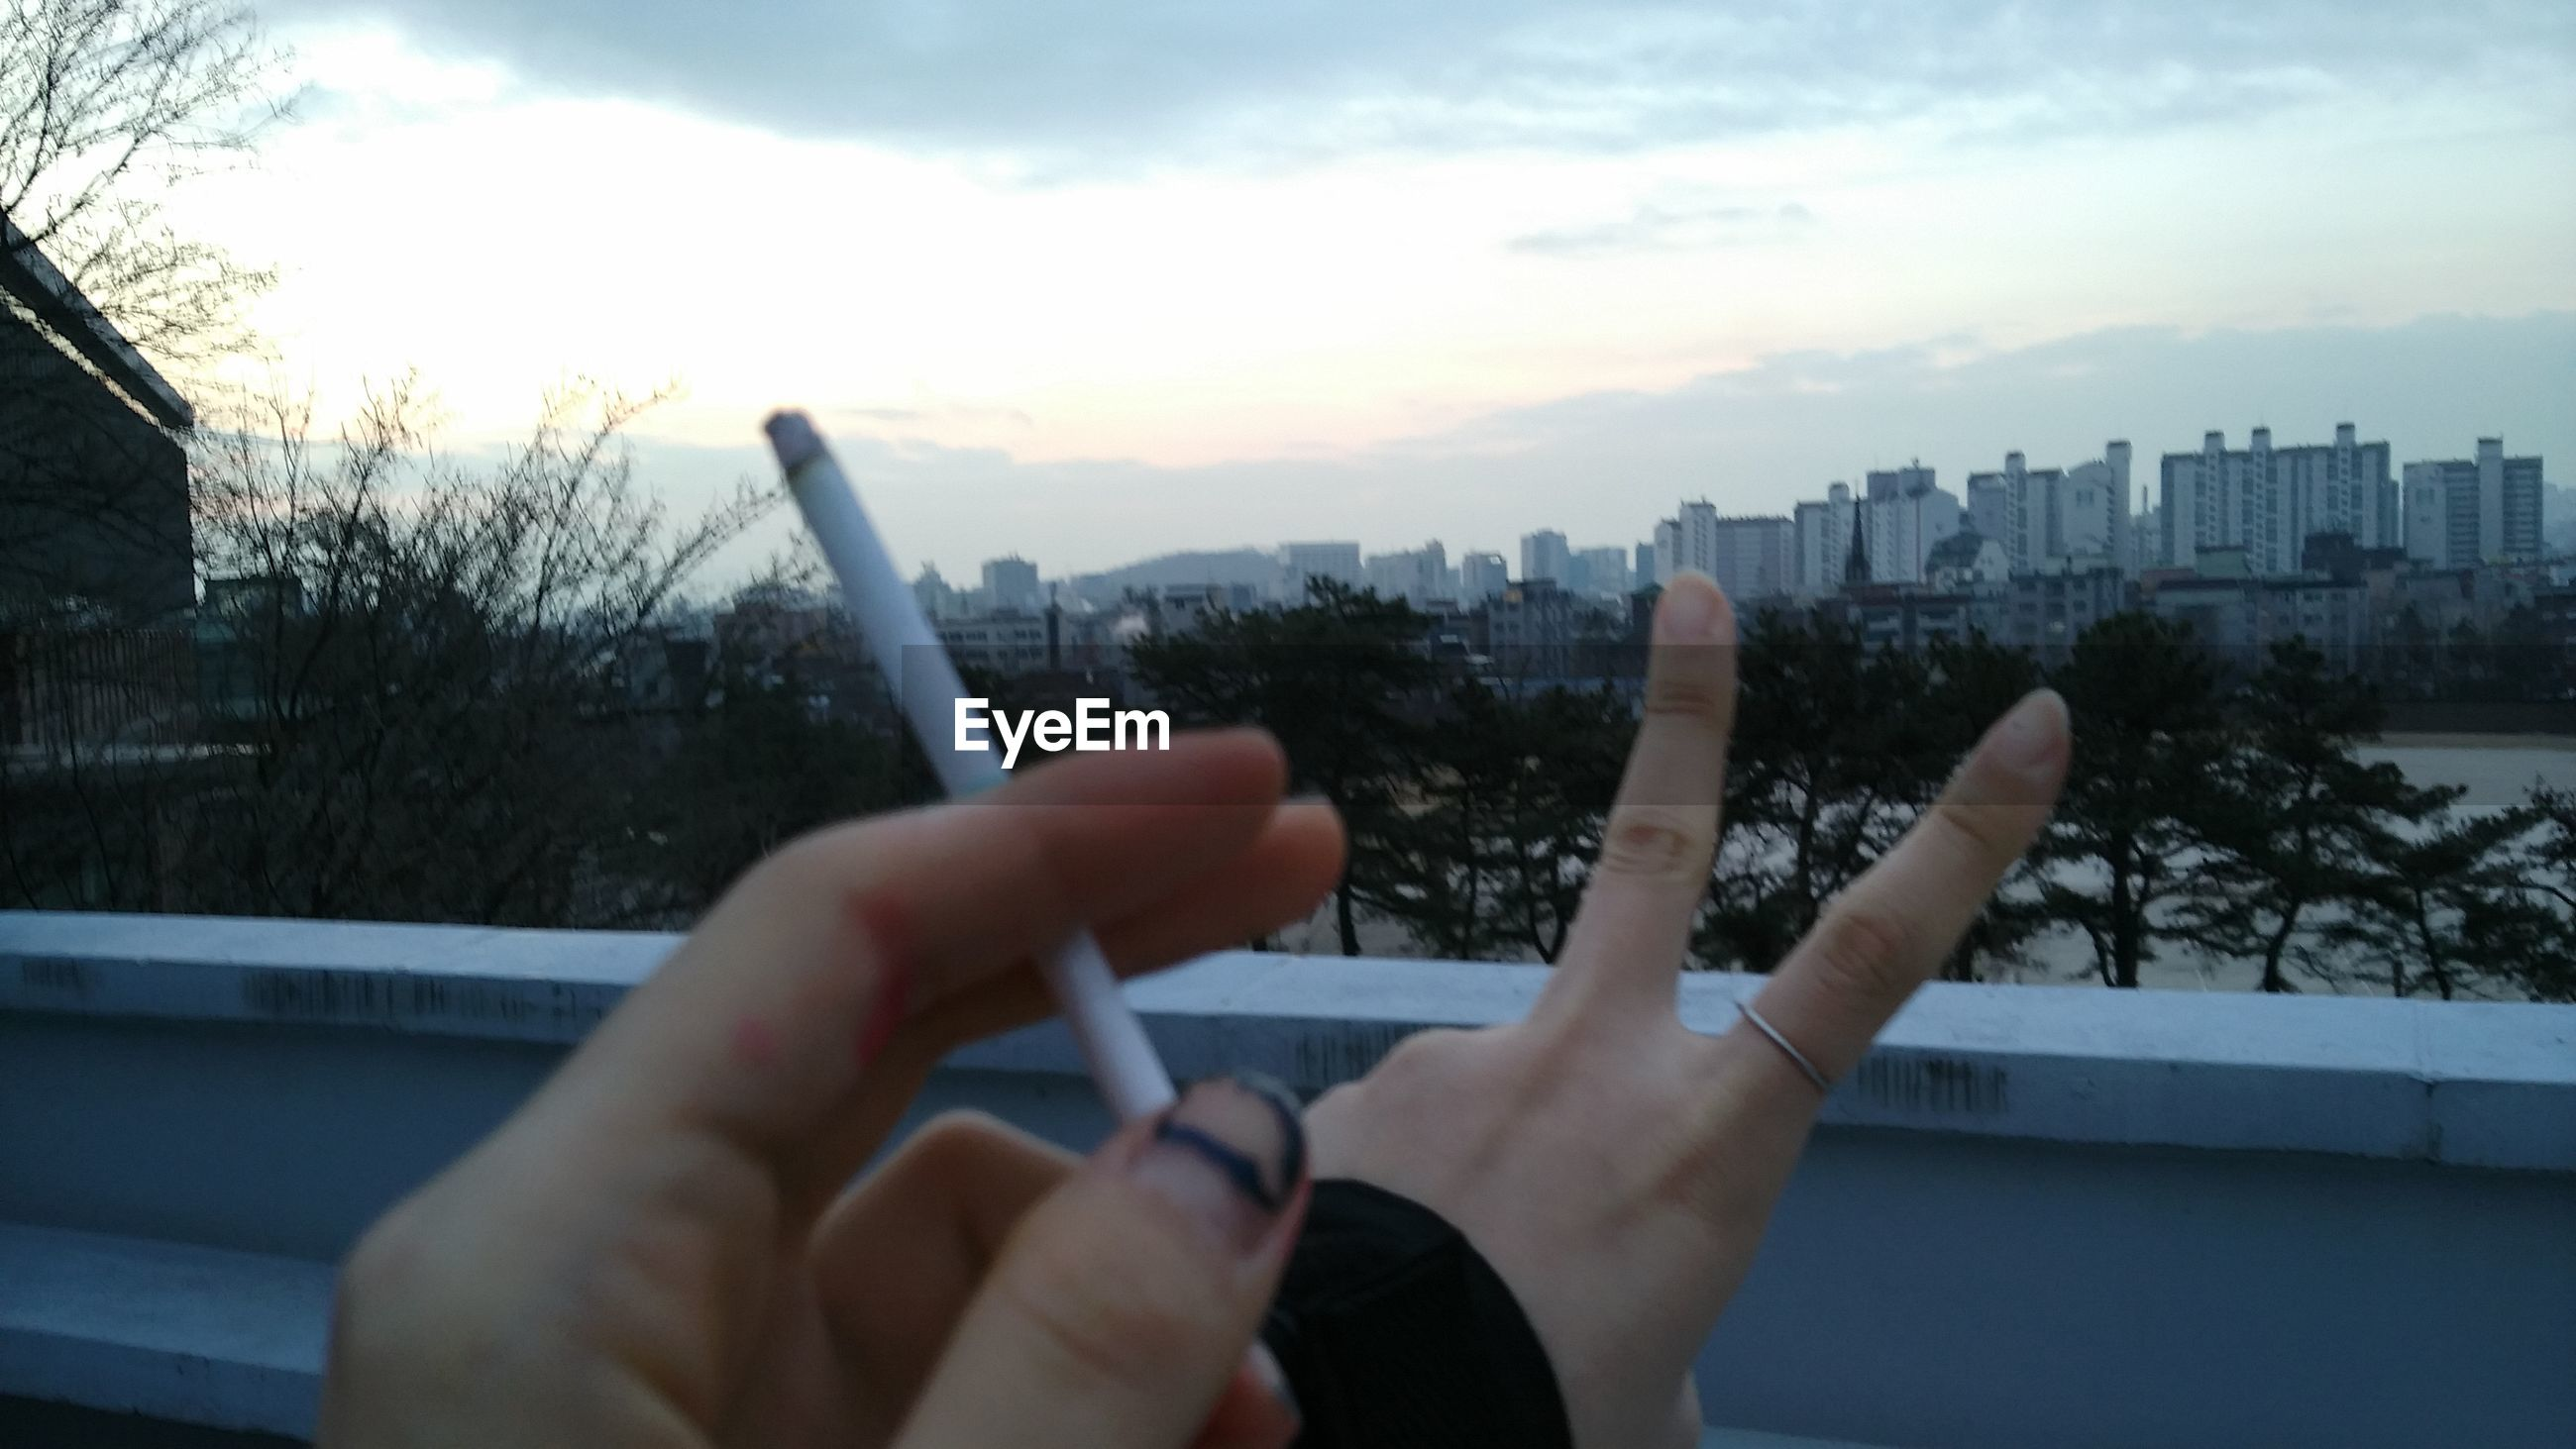 person, building exterior, personal perspective, architecture, sky, built structure, city, part of, holding, lifestyles, cropped, tree, human finger, leisure activity, cityscape, cloud, unrecognizable person